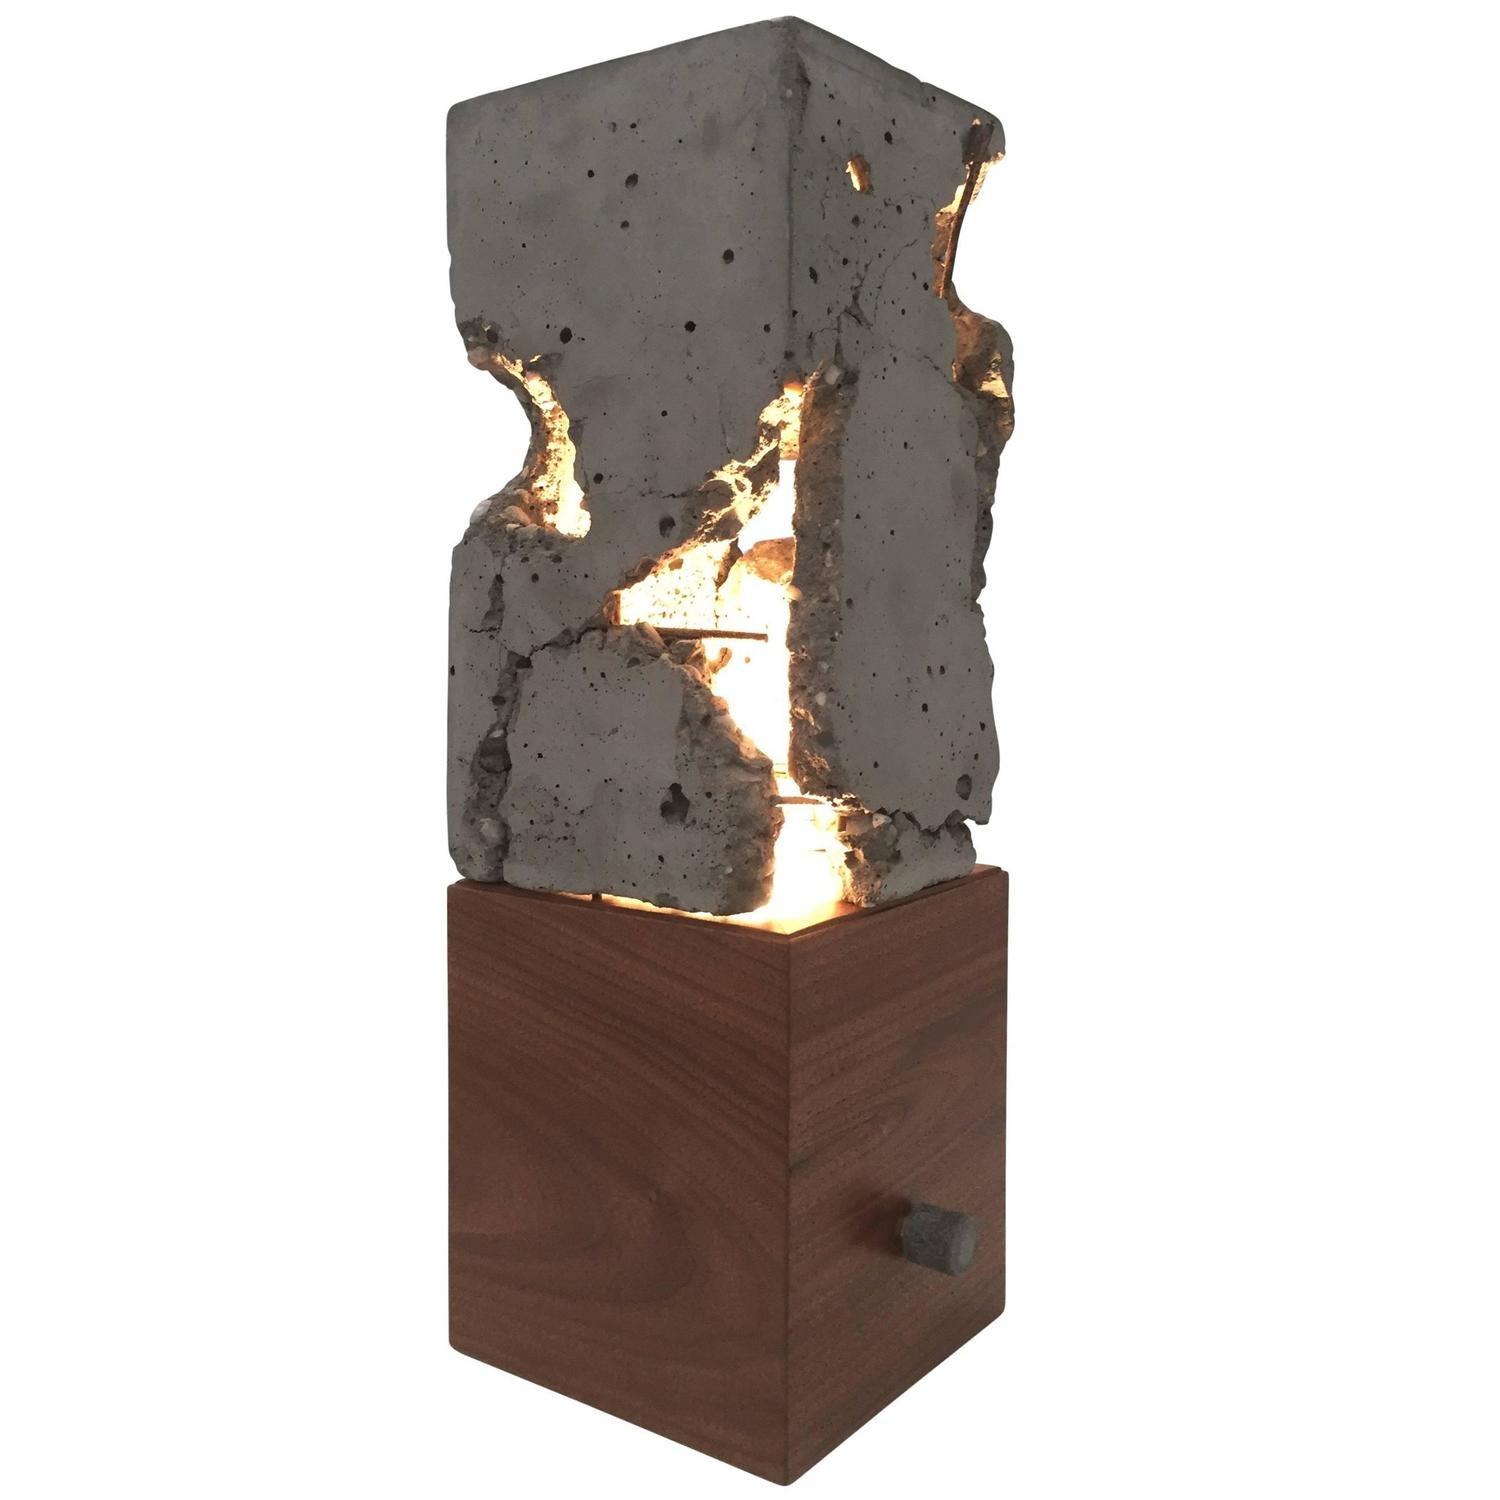 Fractured cast concrete scarpa light solid walnut or blackened fractured cast concrete scarpa light solid walnut or blackened steel base for sale at 1stdibs geotapseo Choice Image